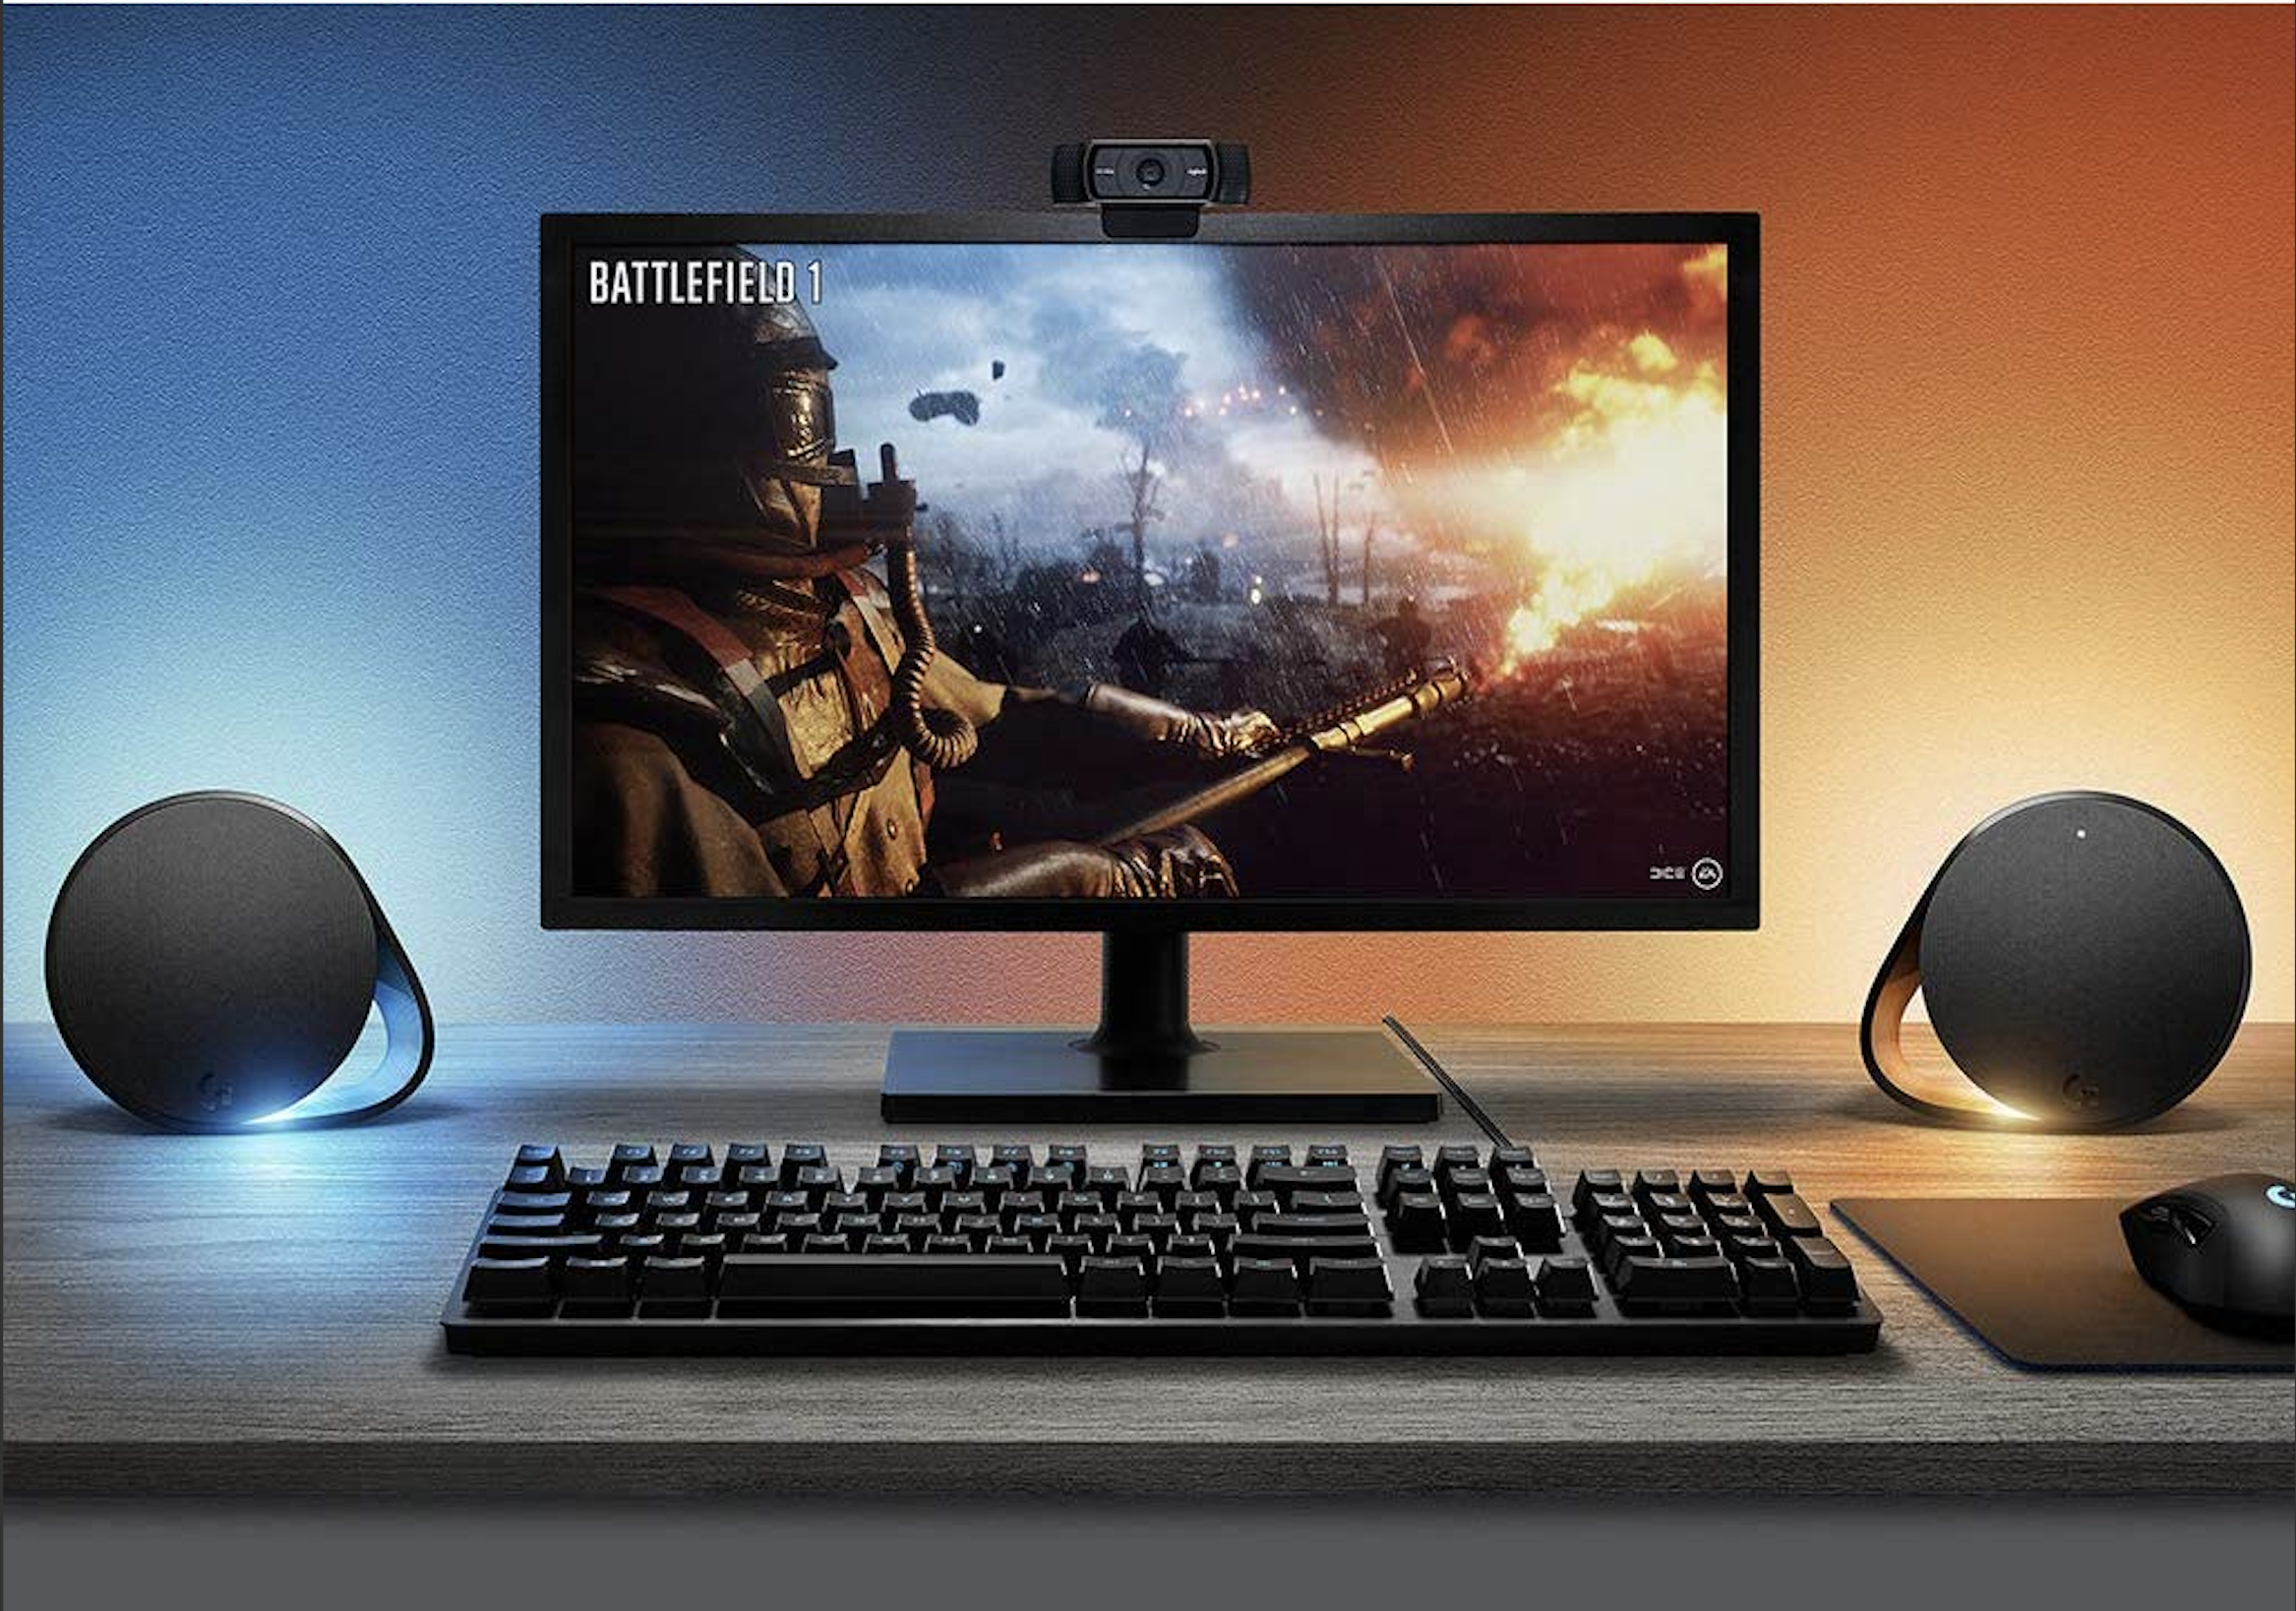 10 Best PC Gaming Speakers 2020 - Do Not Buy Before Reading This!